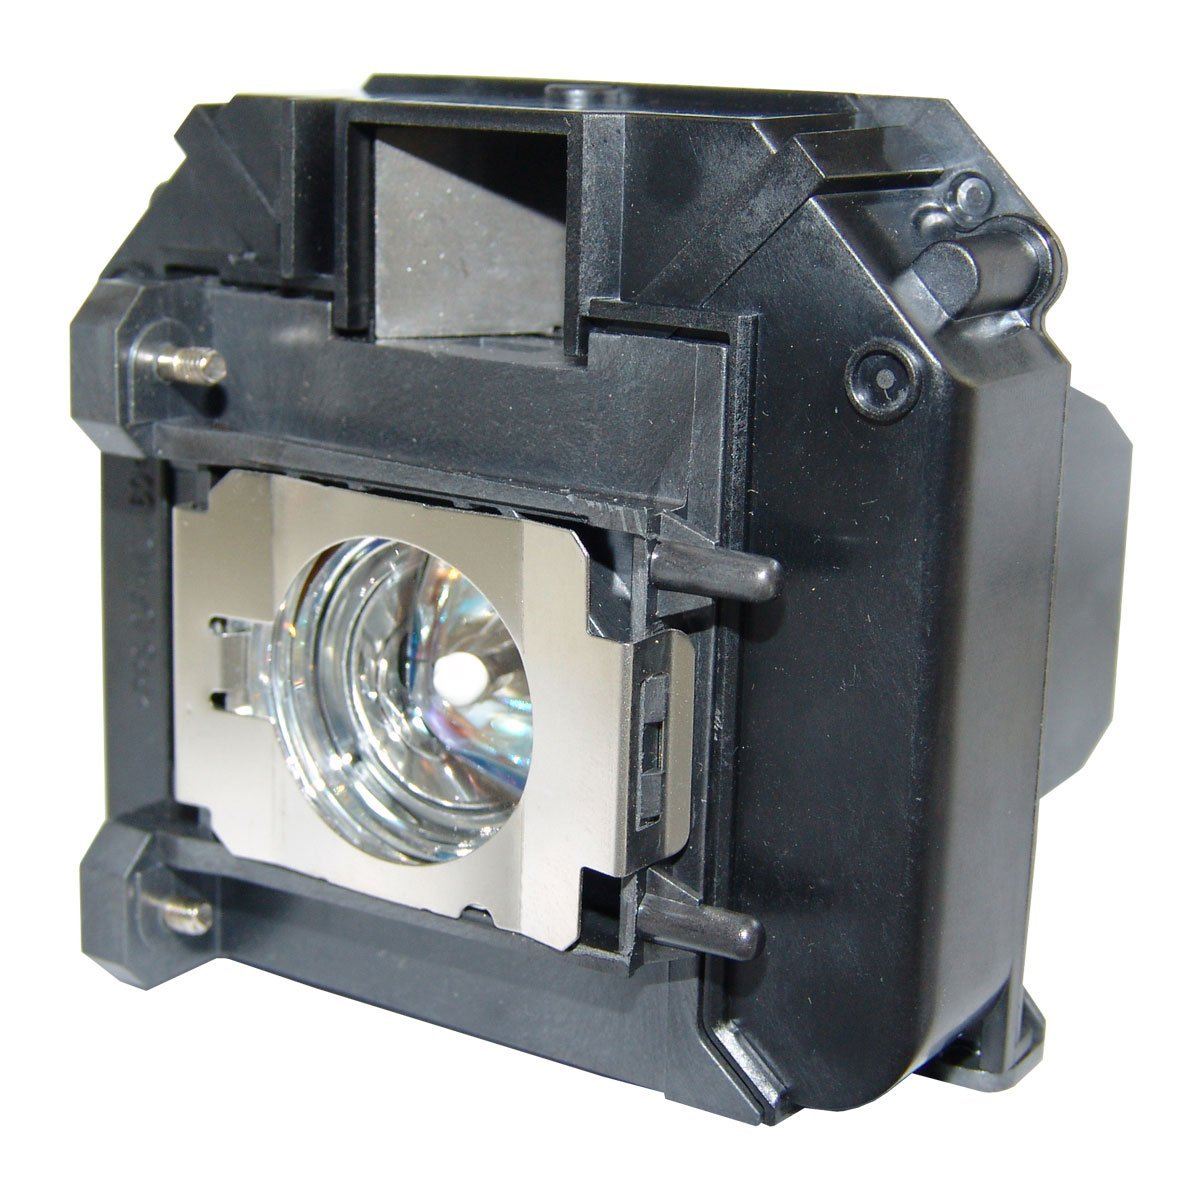 Projector Lamp Bulb ELPLP60 V13H010L60 for Epson EB-905 EB-93 EB-93e EB-95 EB-96W EB-420 EB-425W with housing<br>